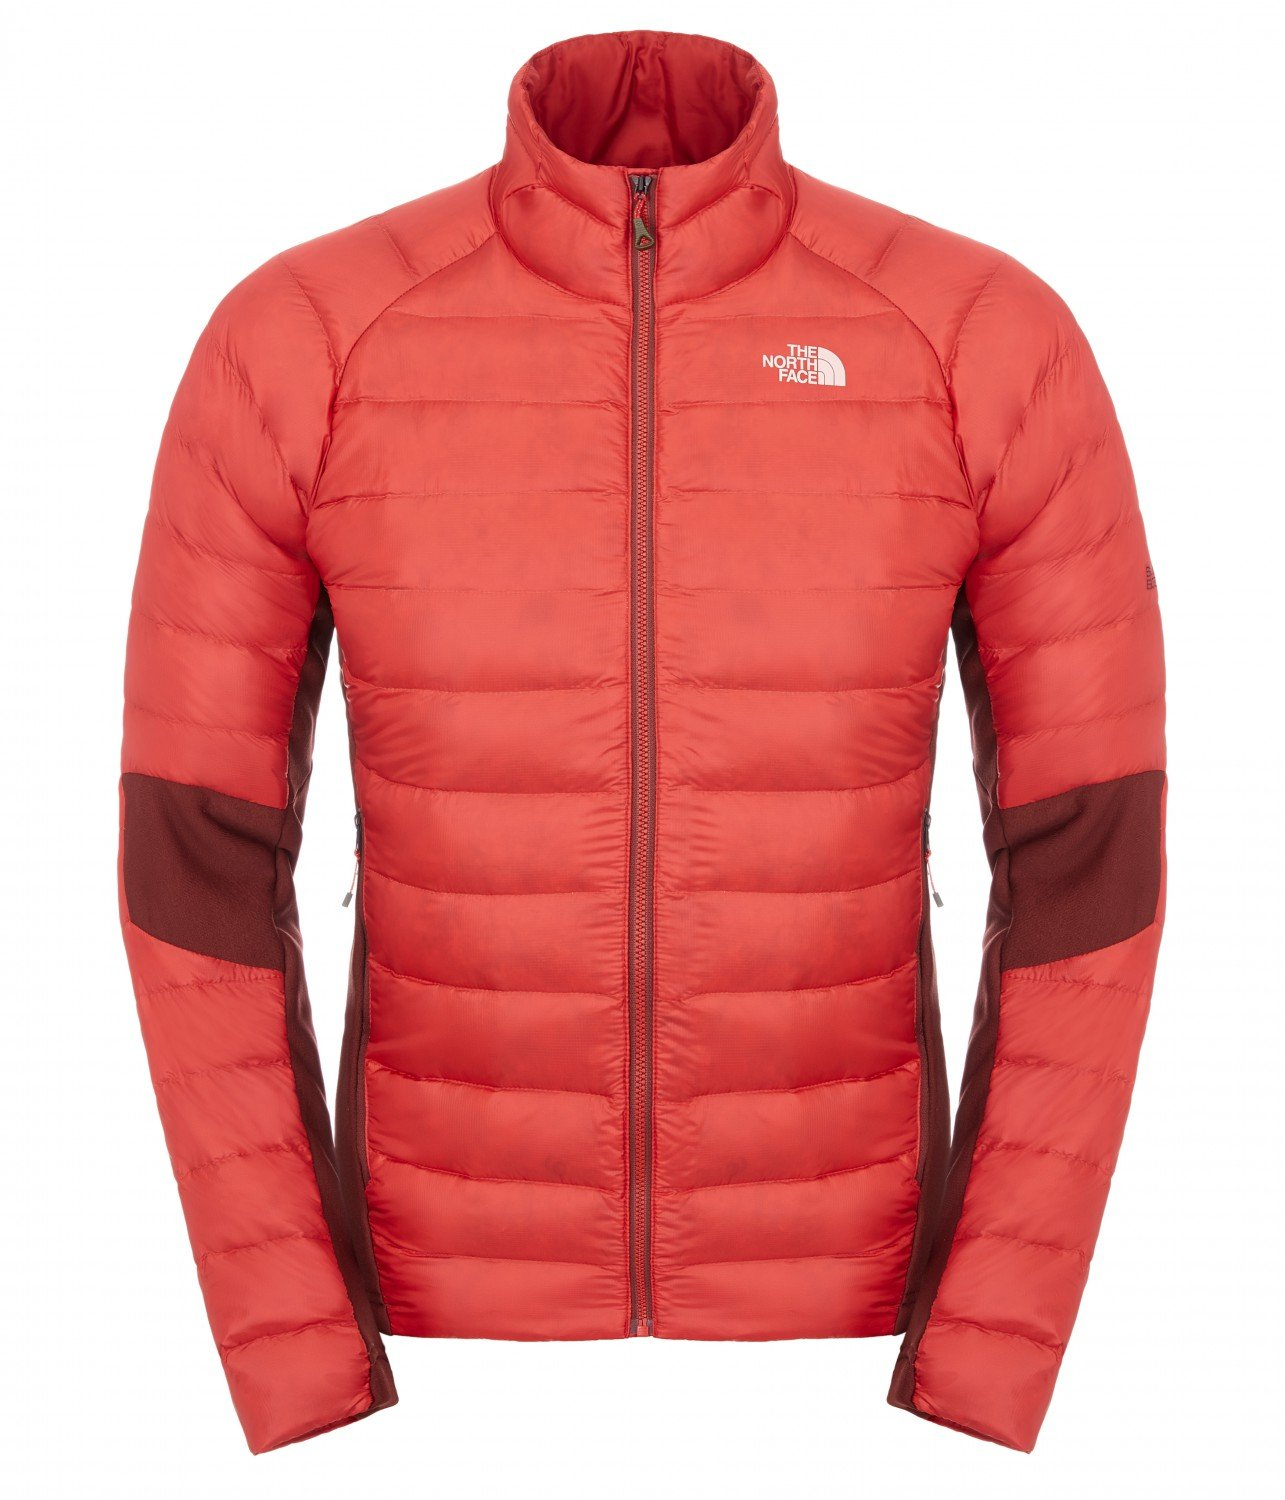 THE NORTH FACE Herren Jacke Crimptastic Hybrid bestellen